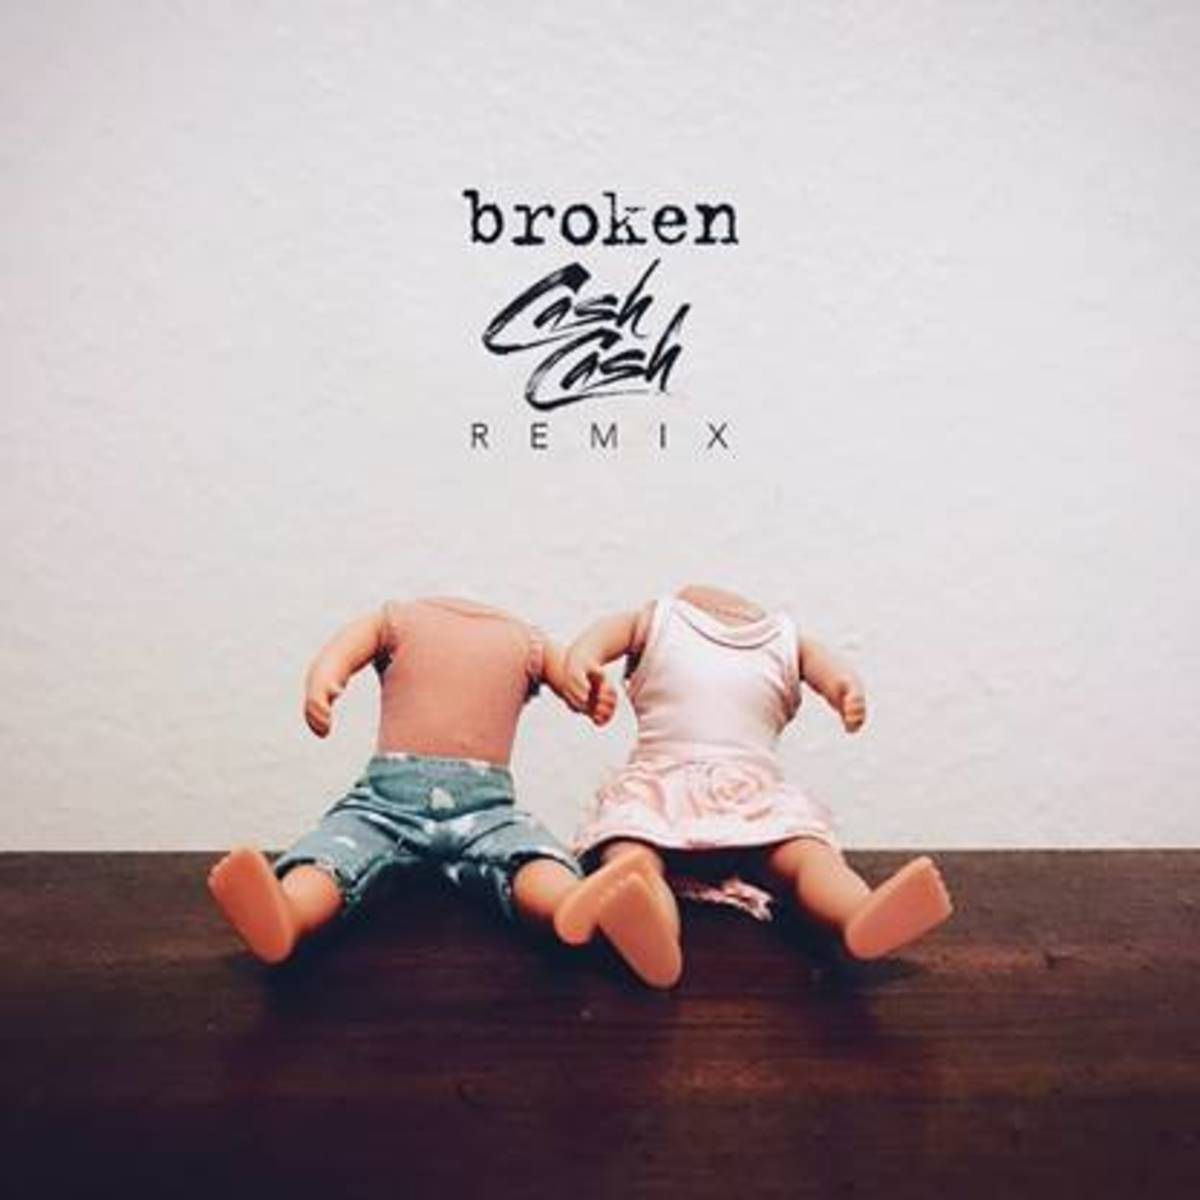 Cash Cash lovelytheband broken Remix Cover Art